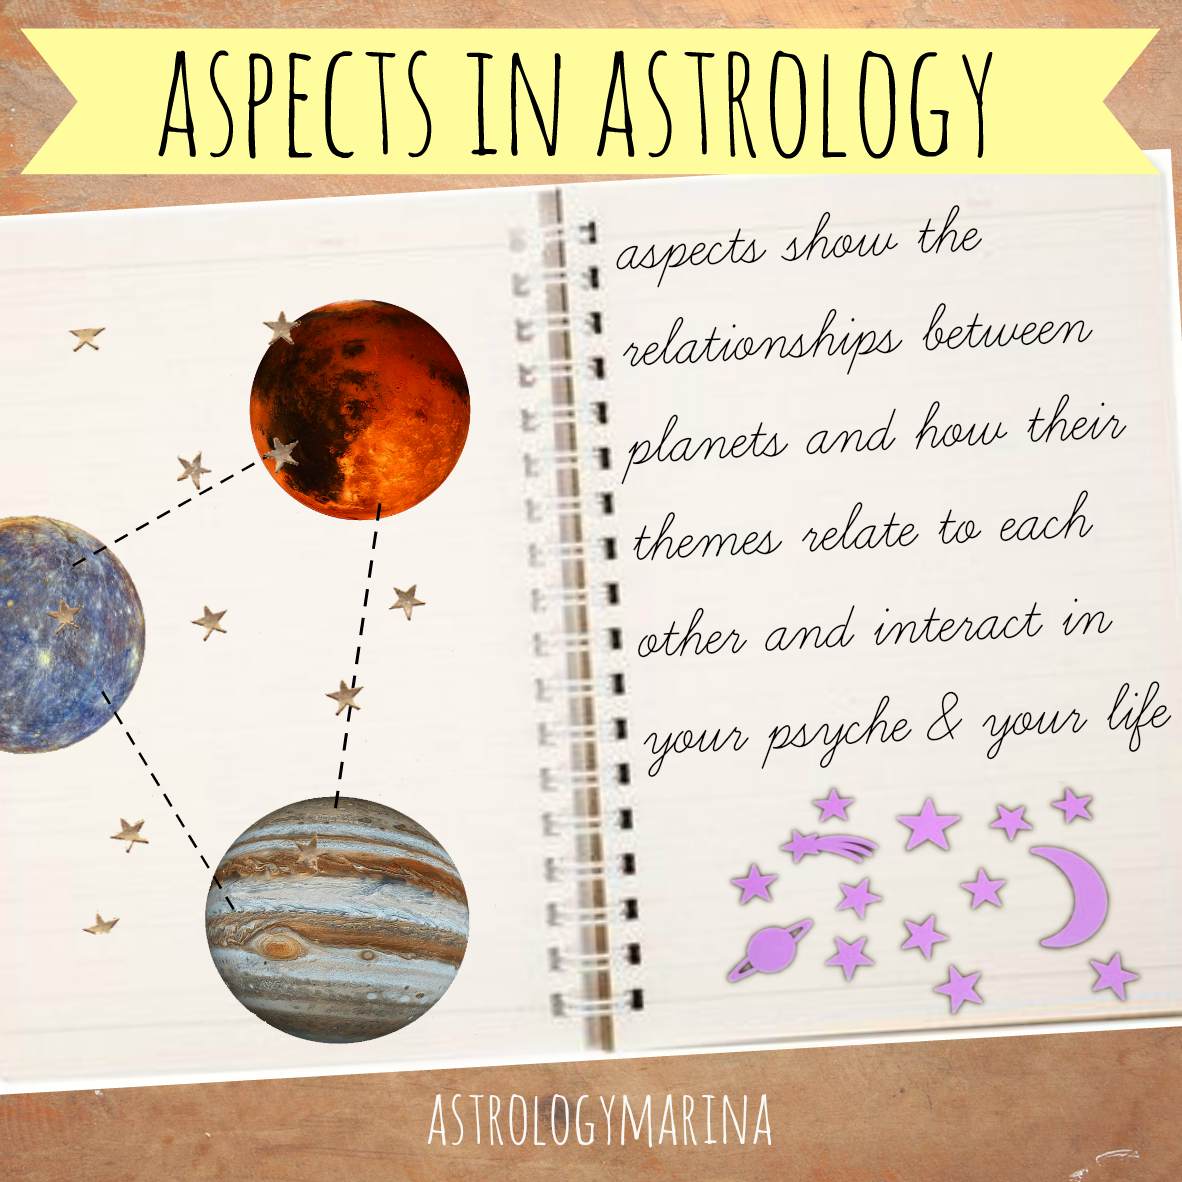 Astrology marina what are aspects in astrology how do i find out this is going to be a quick and simple introduction to the astrological aspects simply to lay the foundation of basic knowledge because i want to start nvjuhfo Gallery